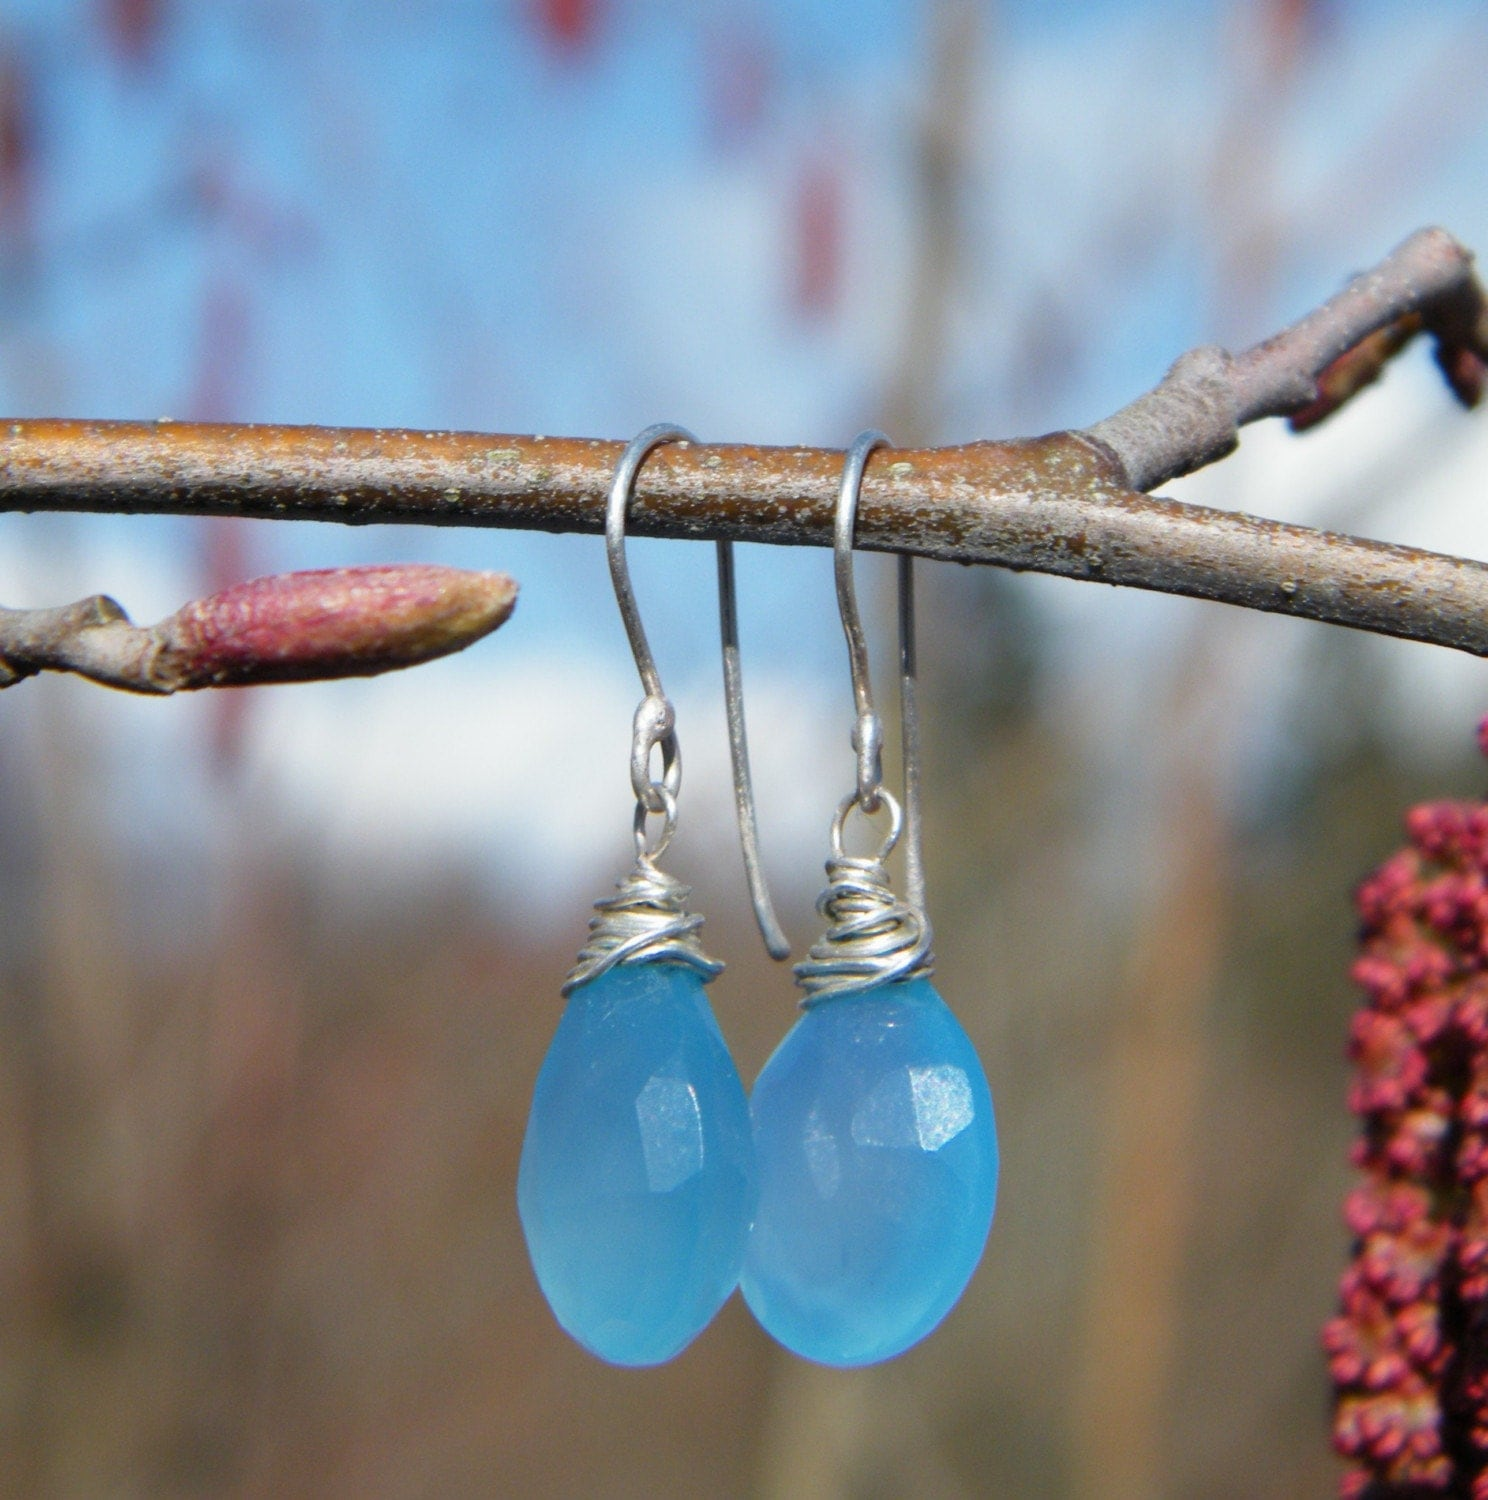 Earrings in Sky blue Chalcedony and Sterling Silver - Blue Sky Days